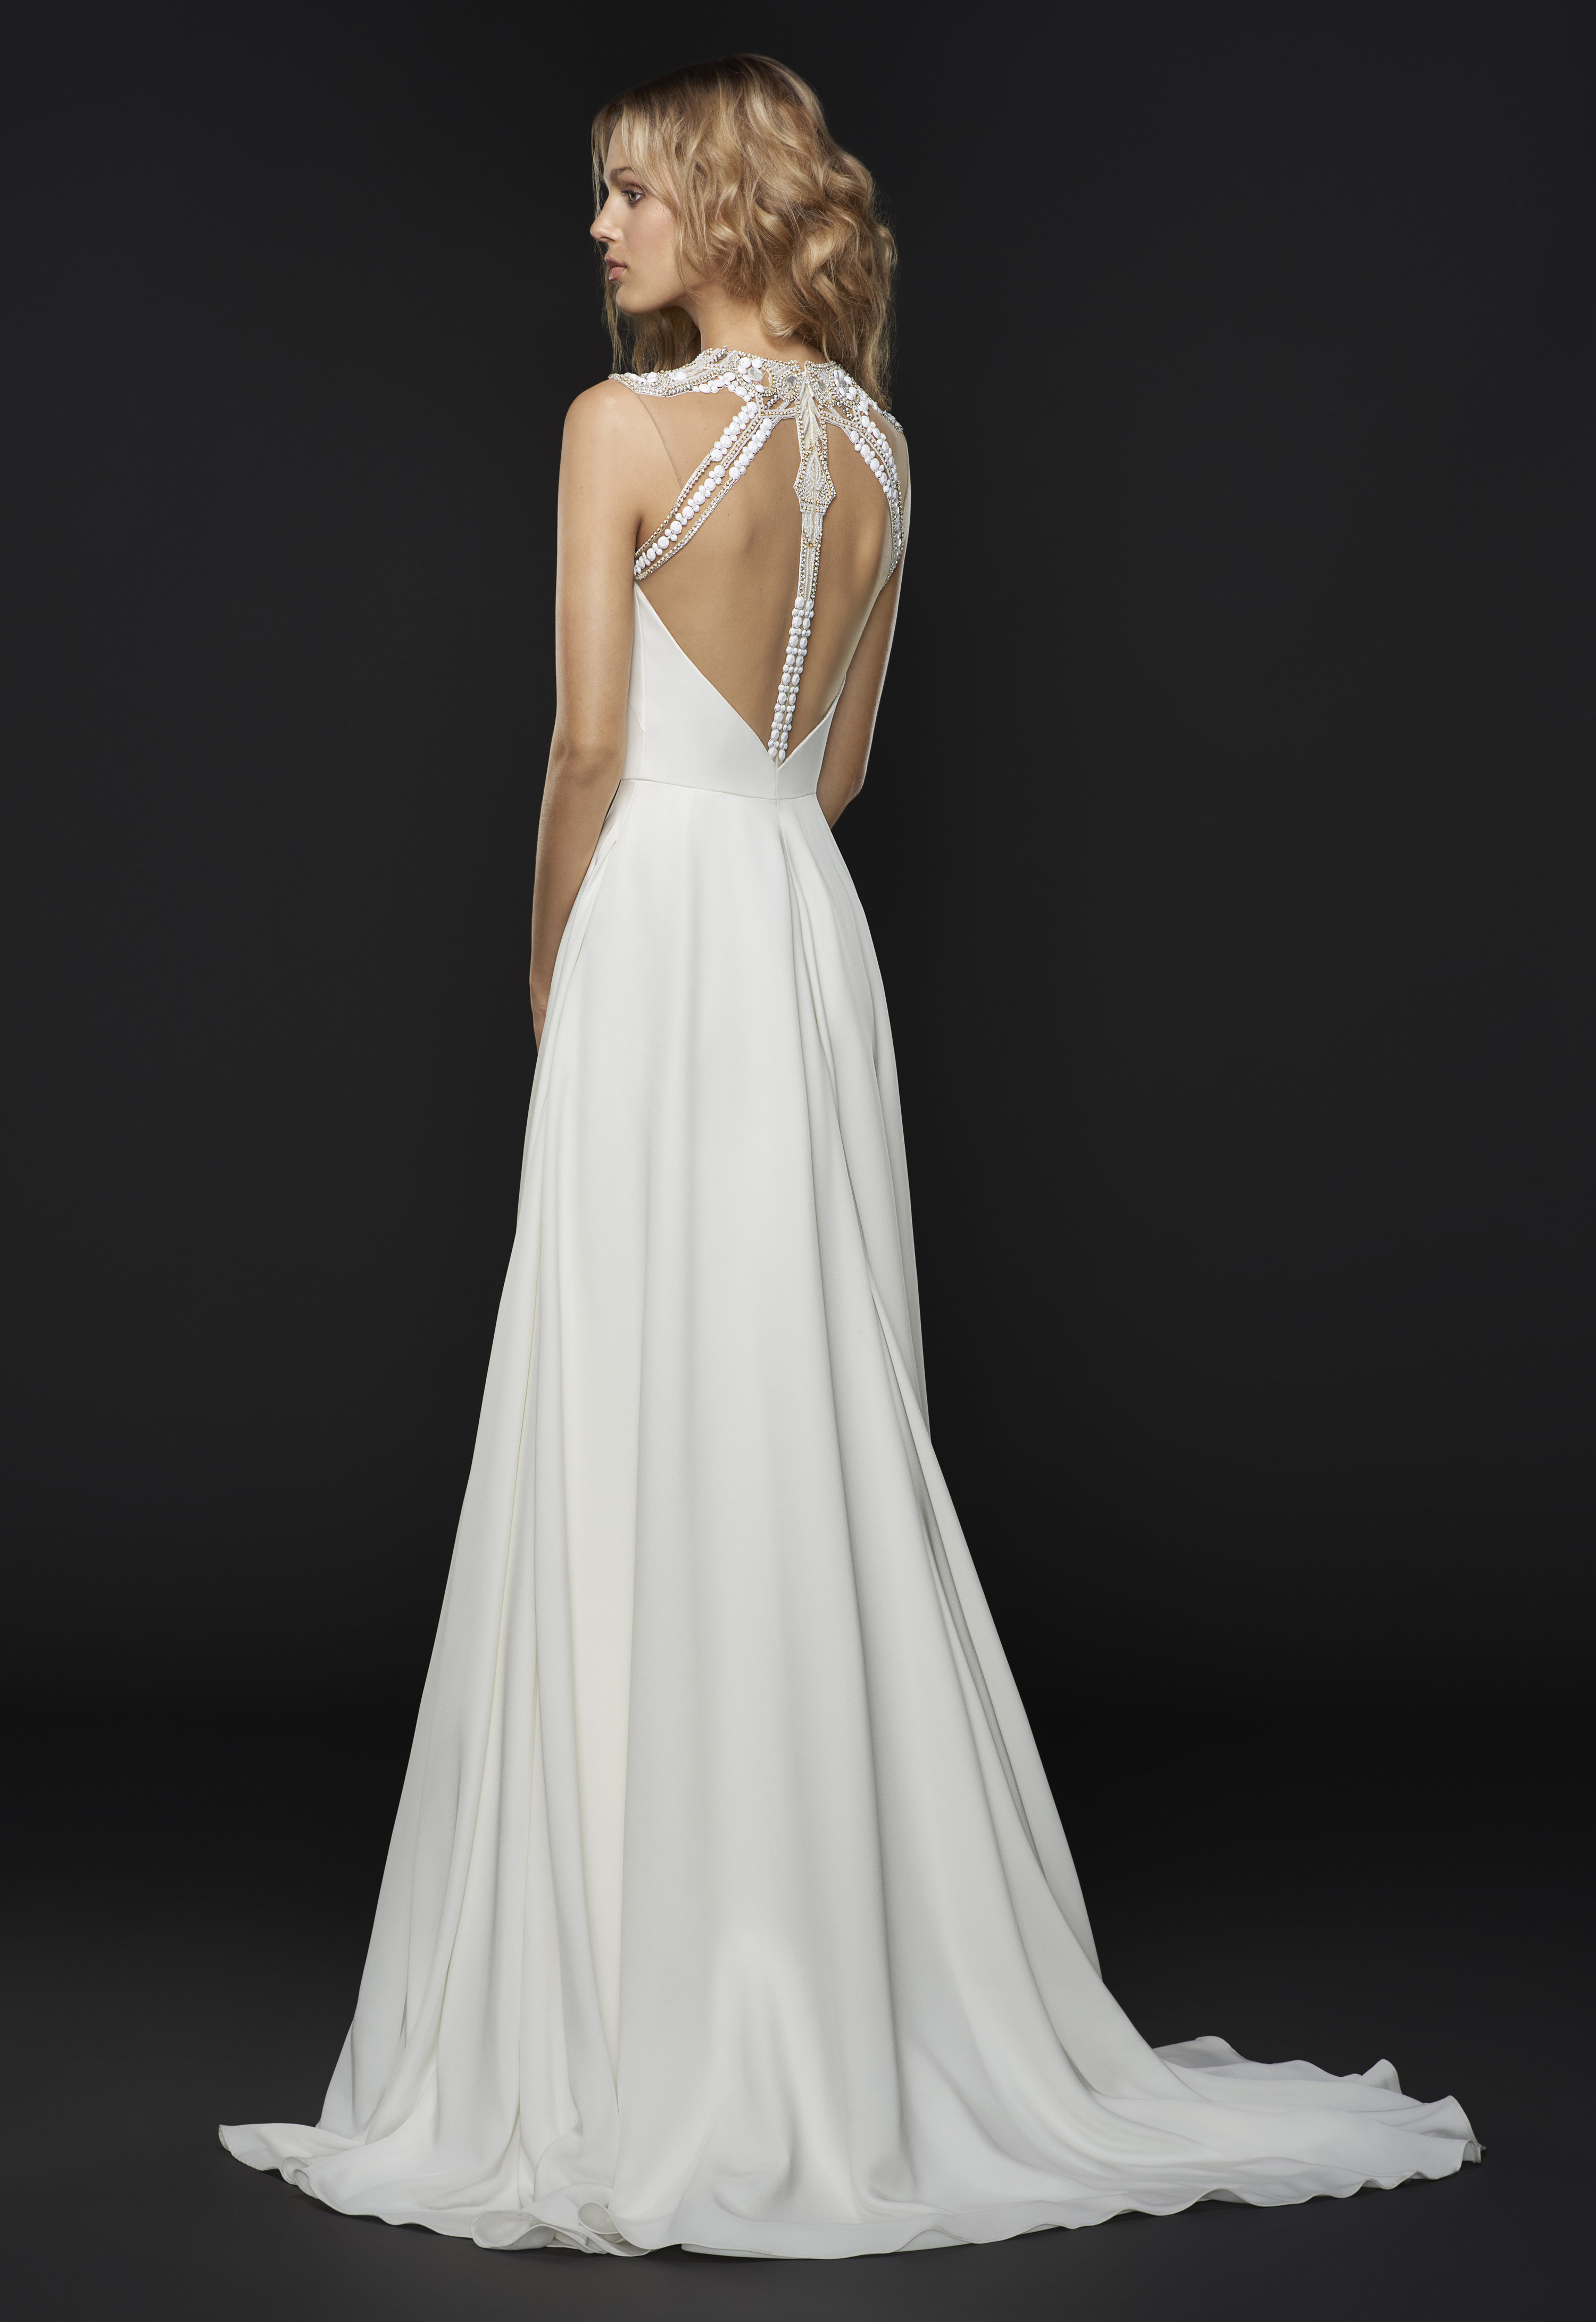 Bridal Gowns and Wedding Dresses by JLM Couture - Style 6759 Cleo